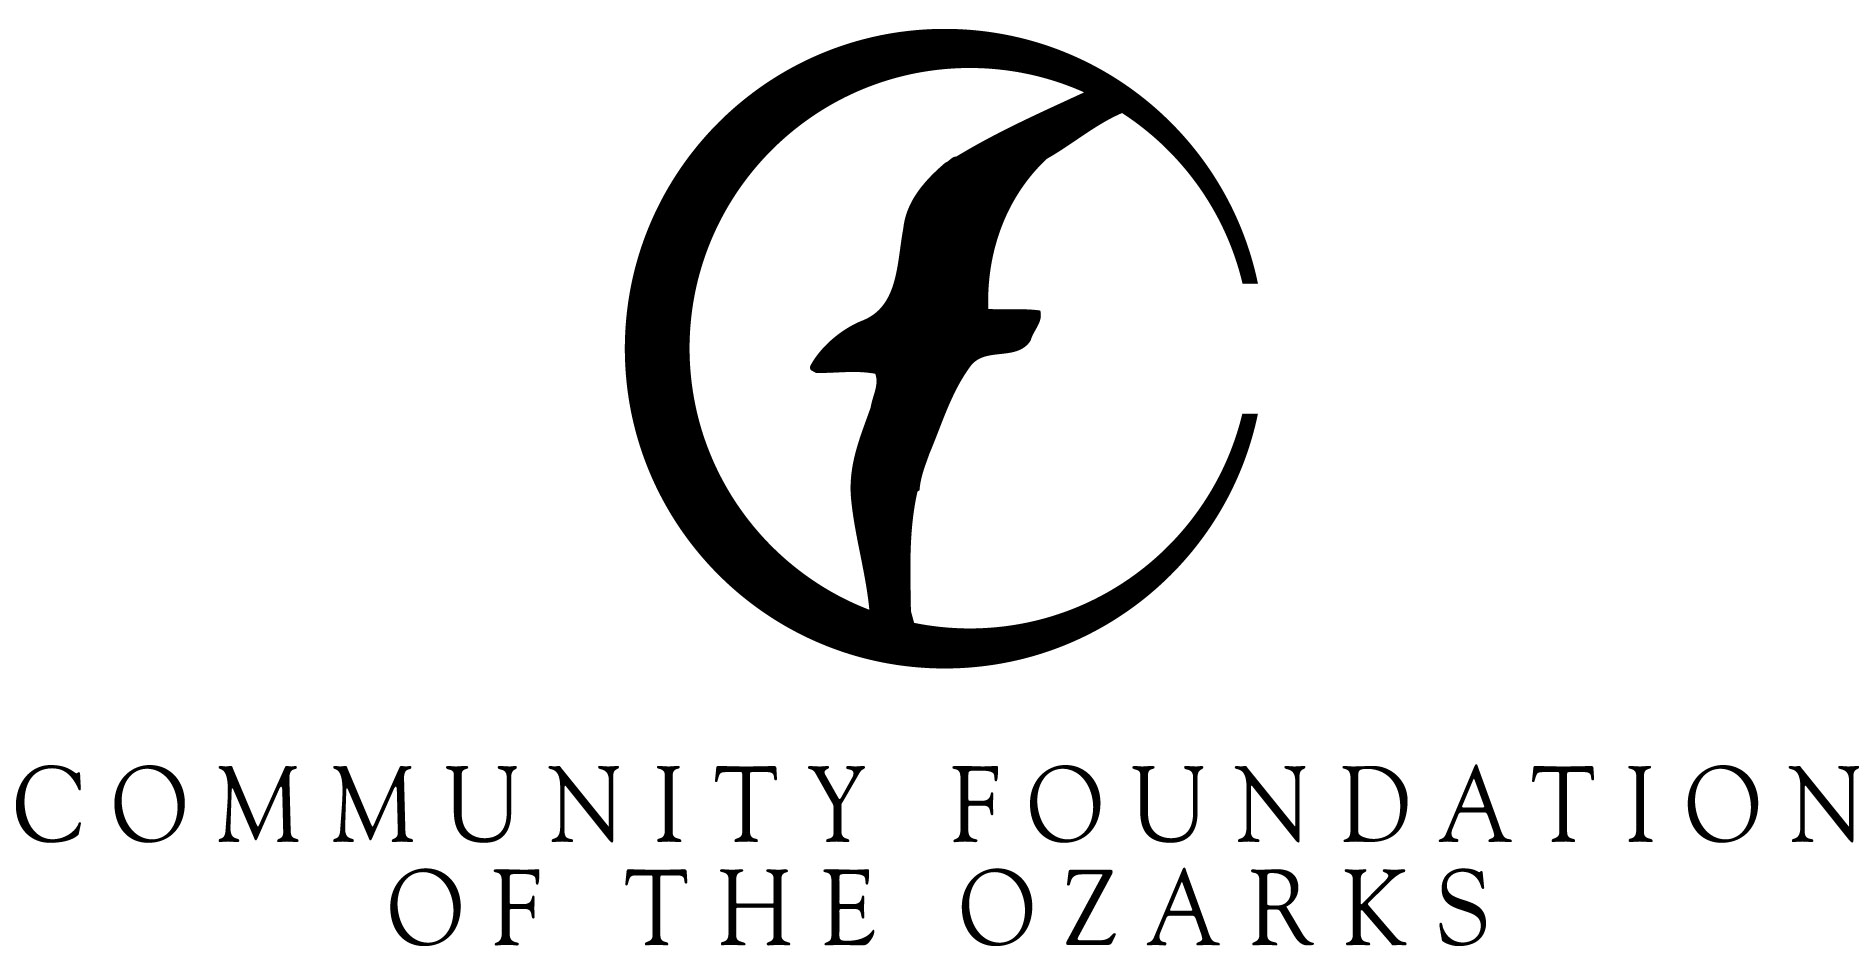 Community Foundation of the Ozarks logo